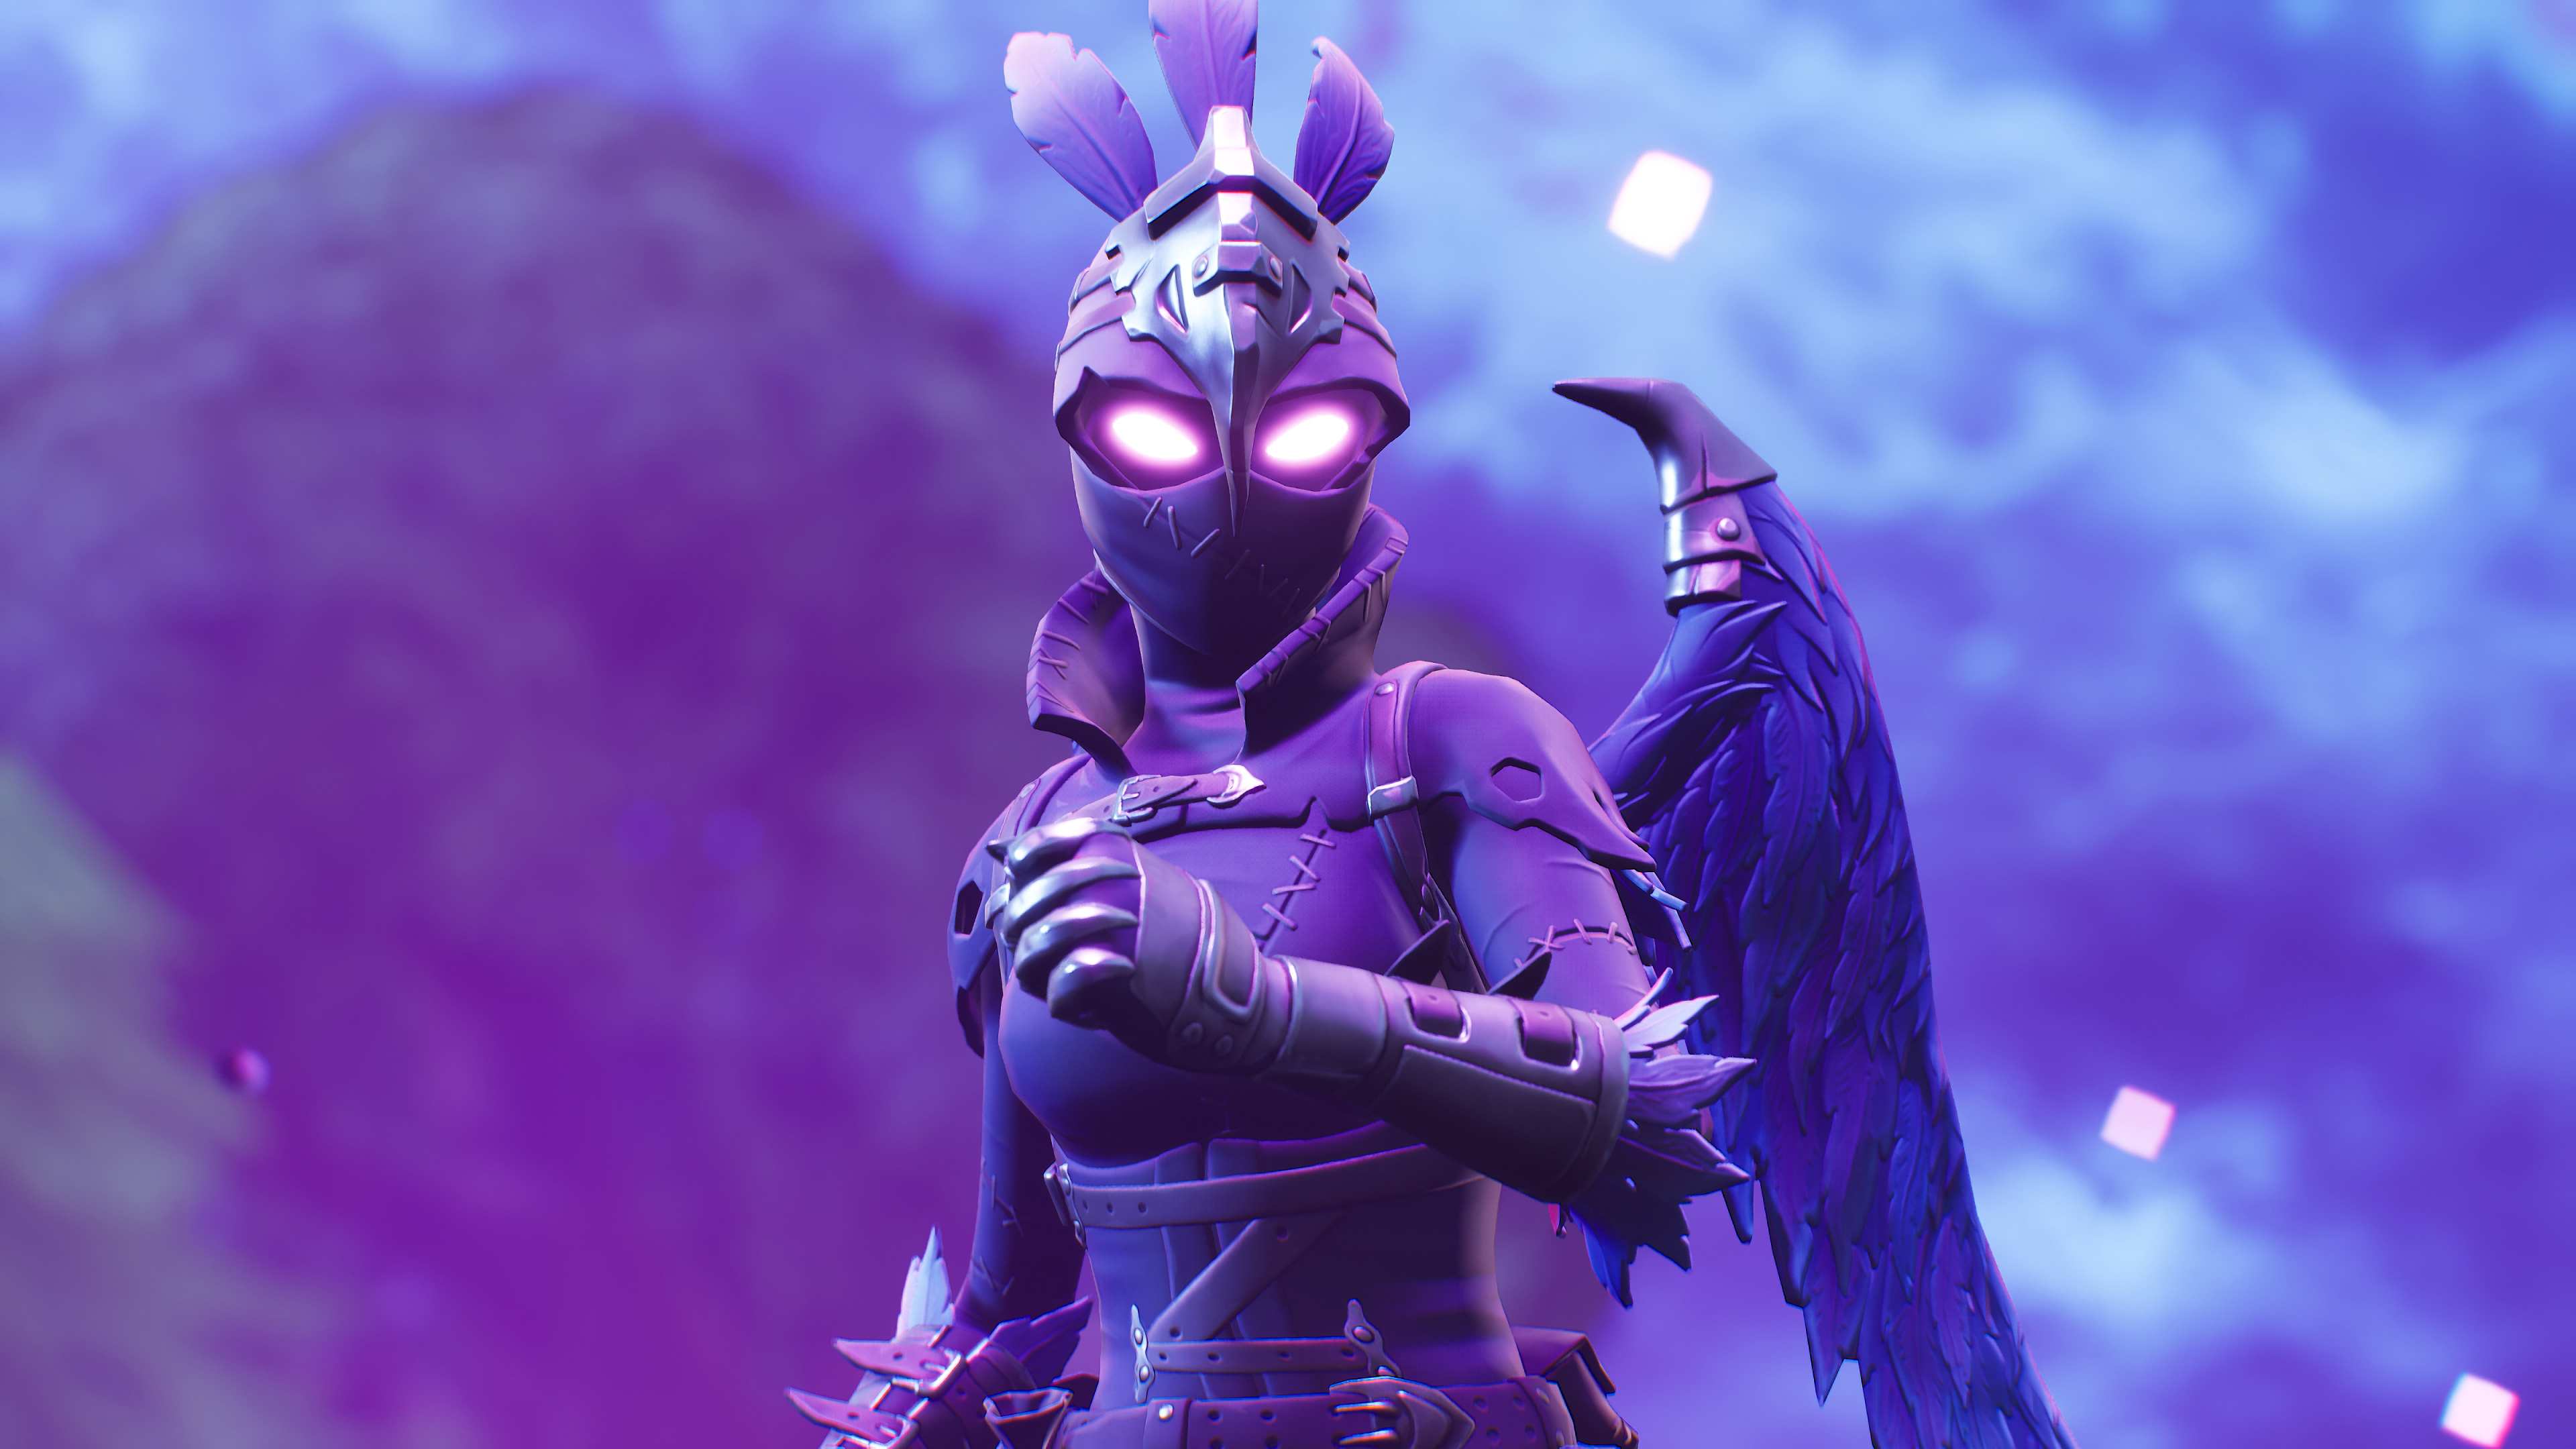 1920x1080 Ravage Fortnite Battle Royale 2018 4K Laptop